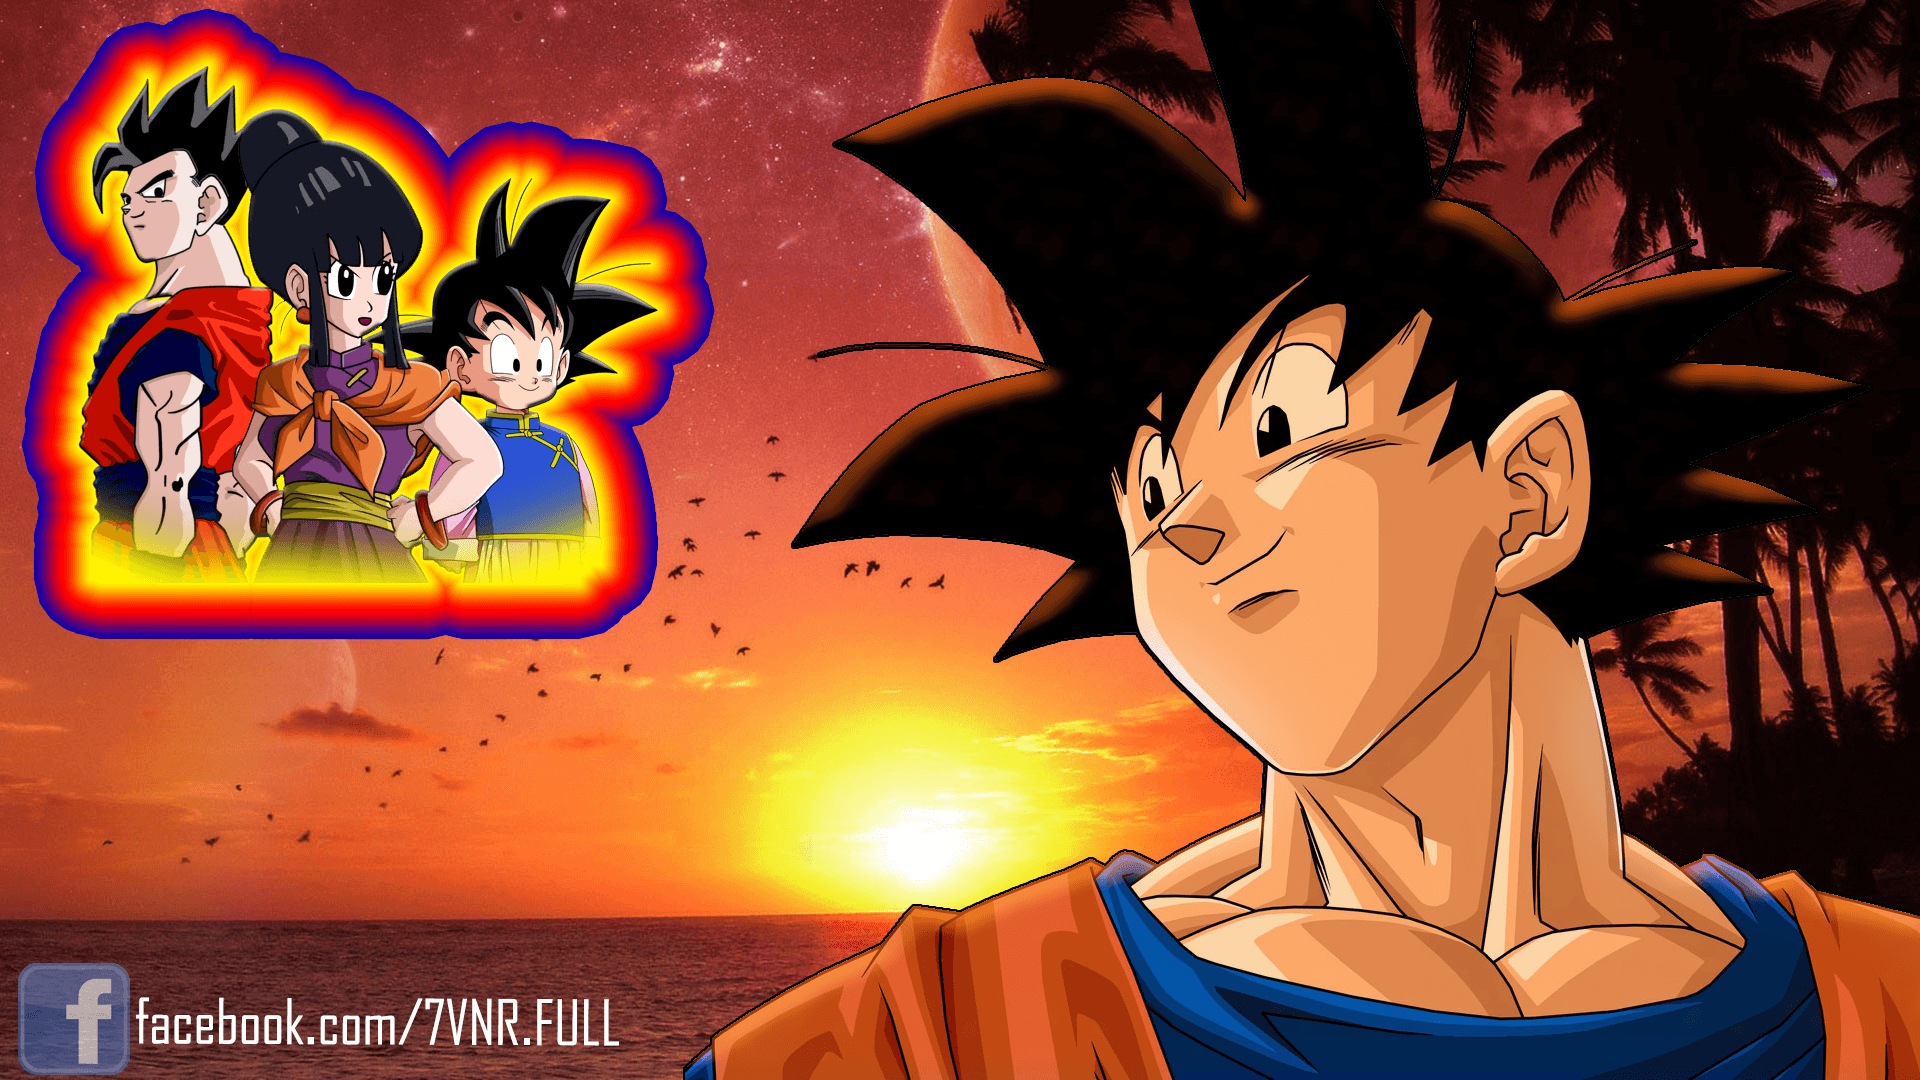 Goku Gohan Goten Desktop Wallpapers Wallpaper Cave